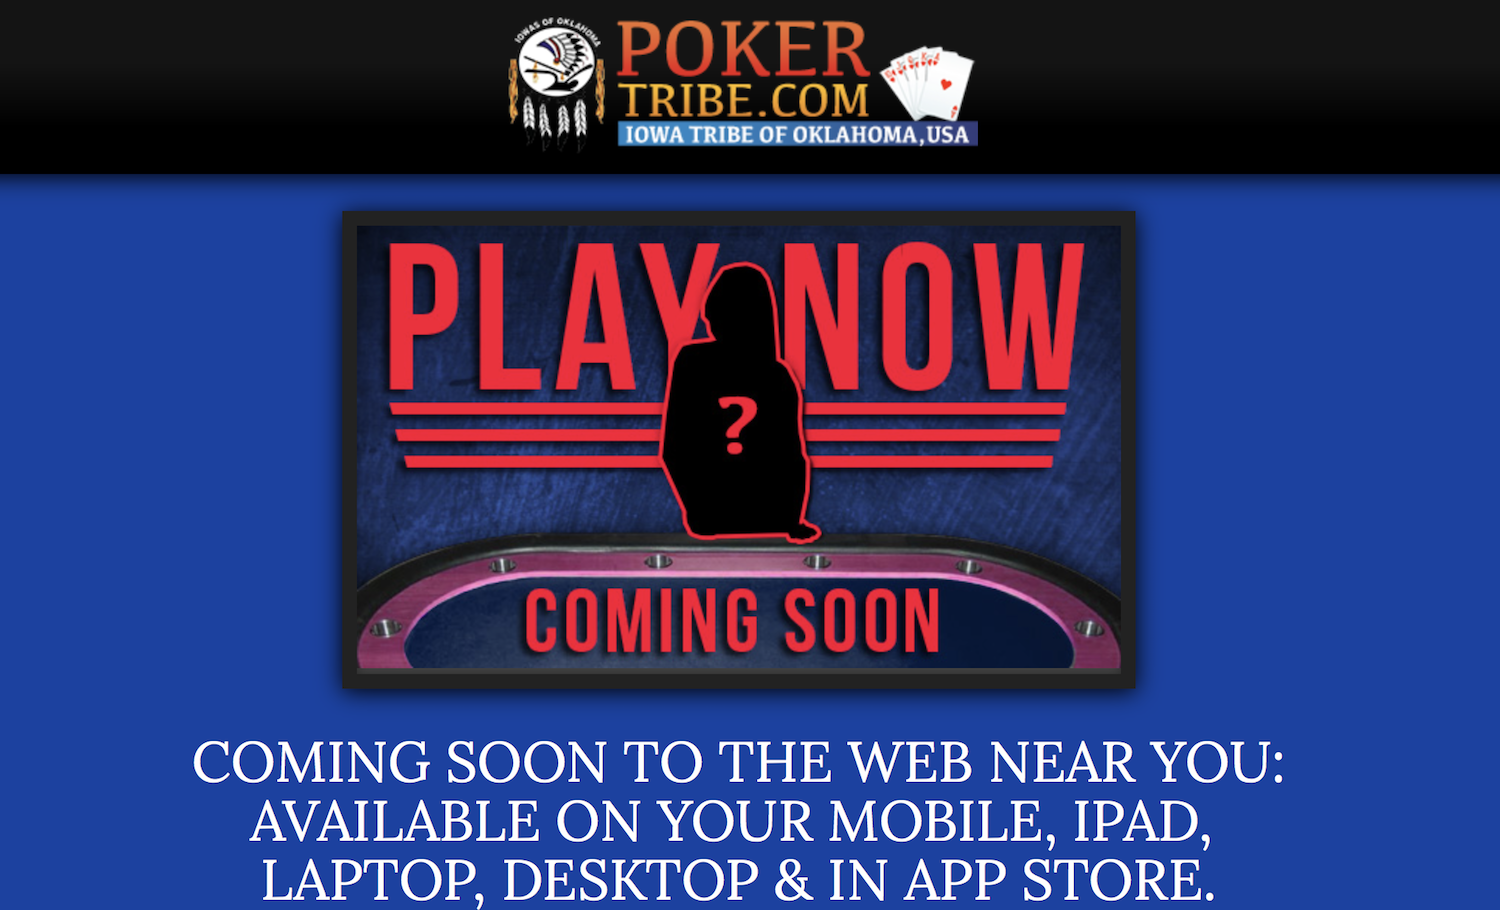 Iowa Tribe announces 'Monsterous' deal linked to long-delayed poker website